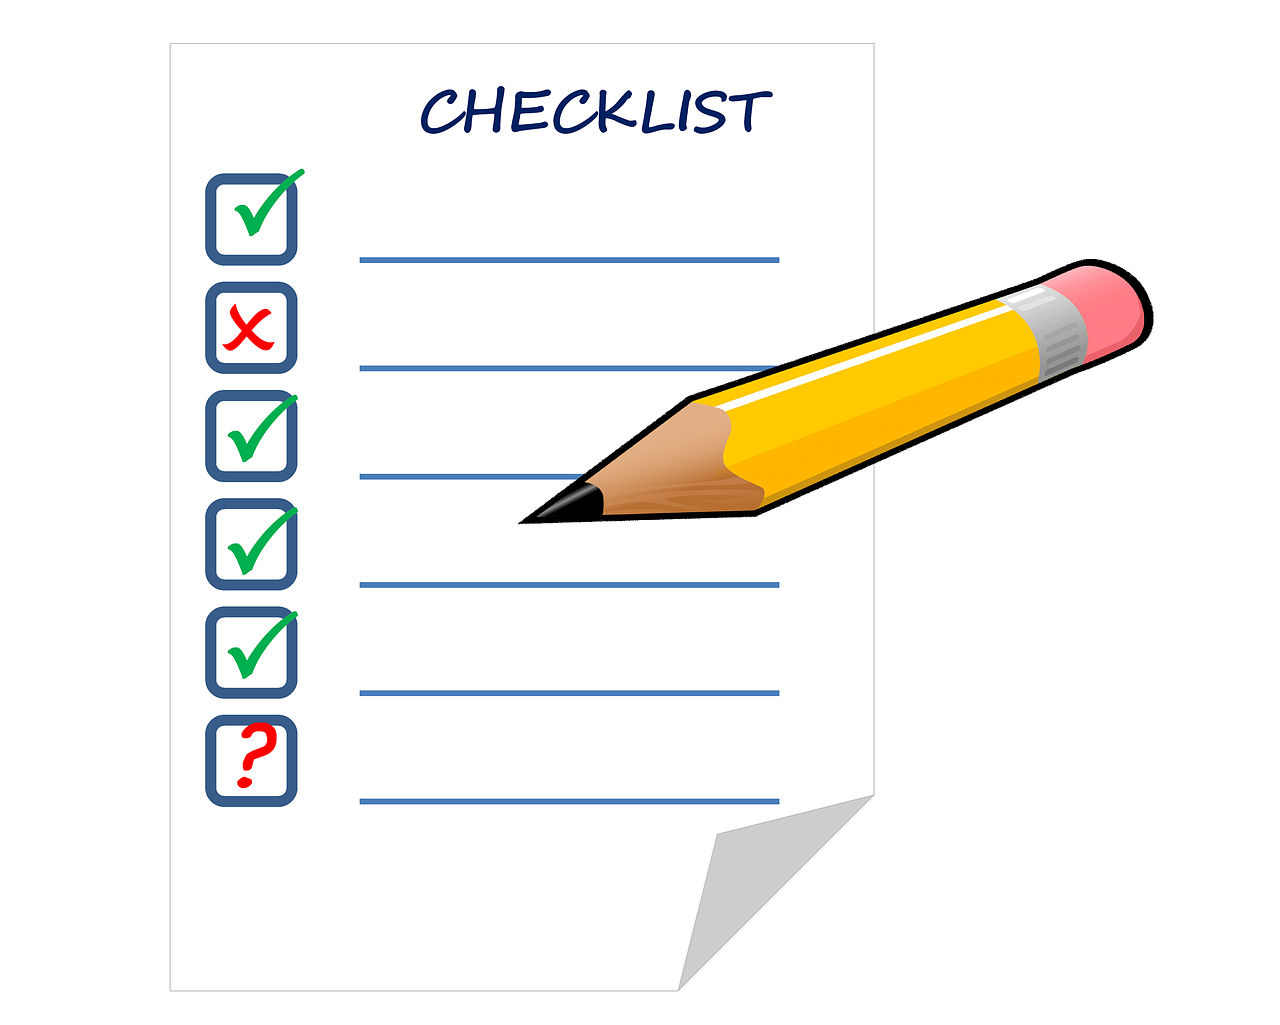 checklist, list, check